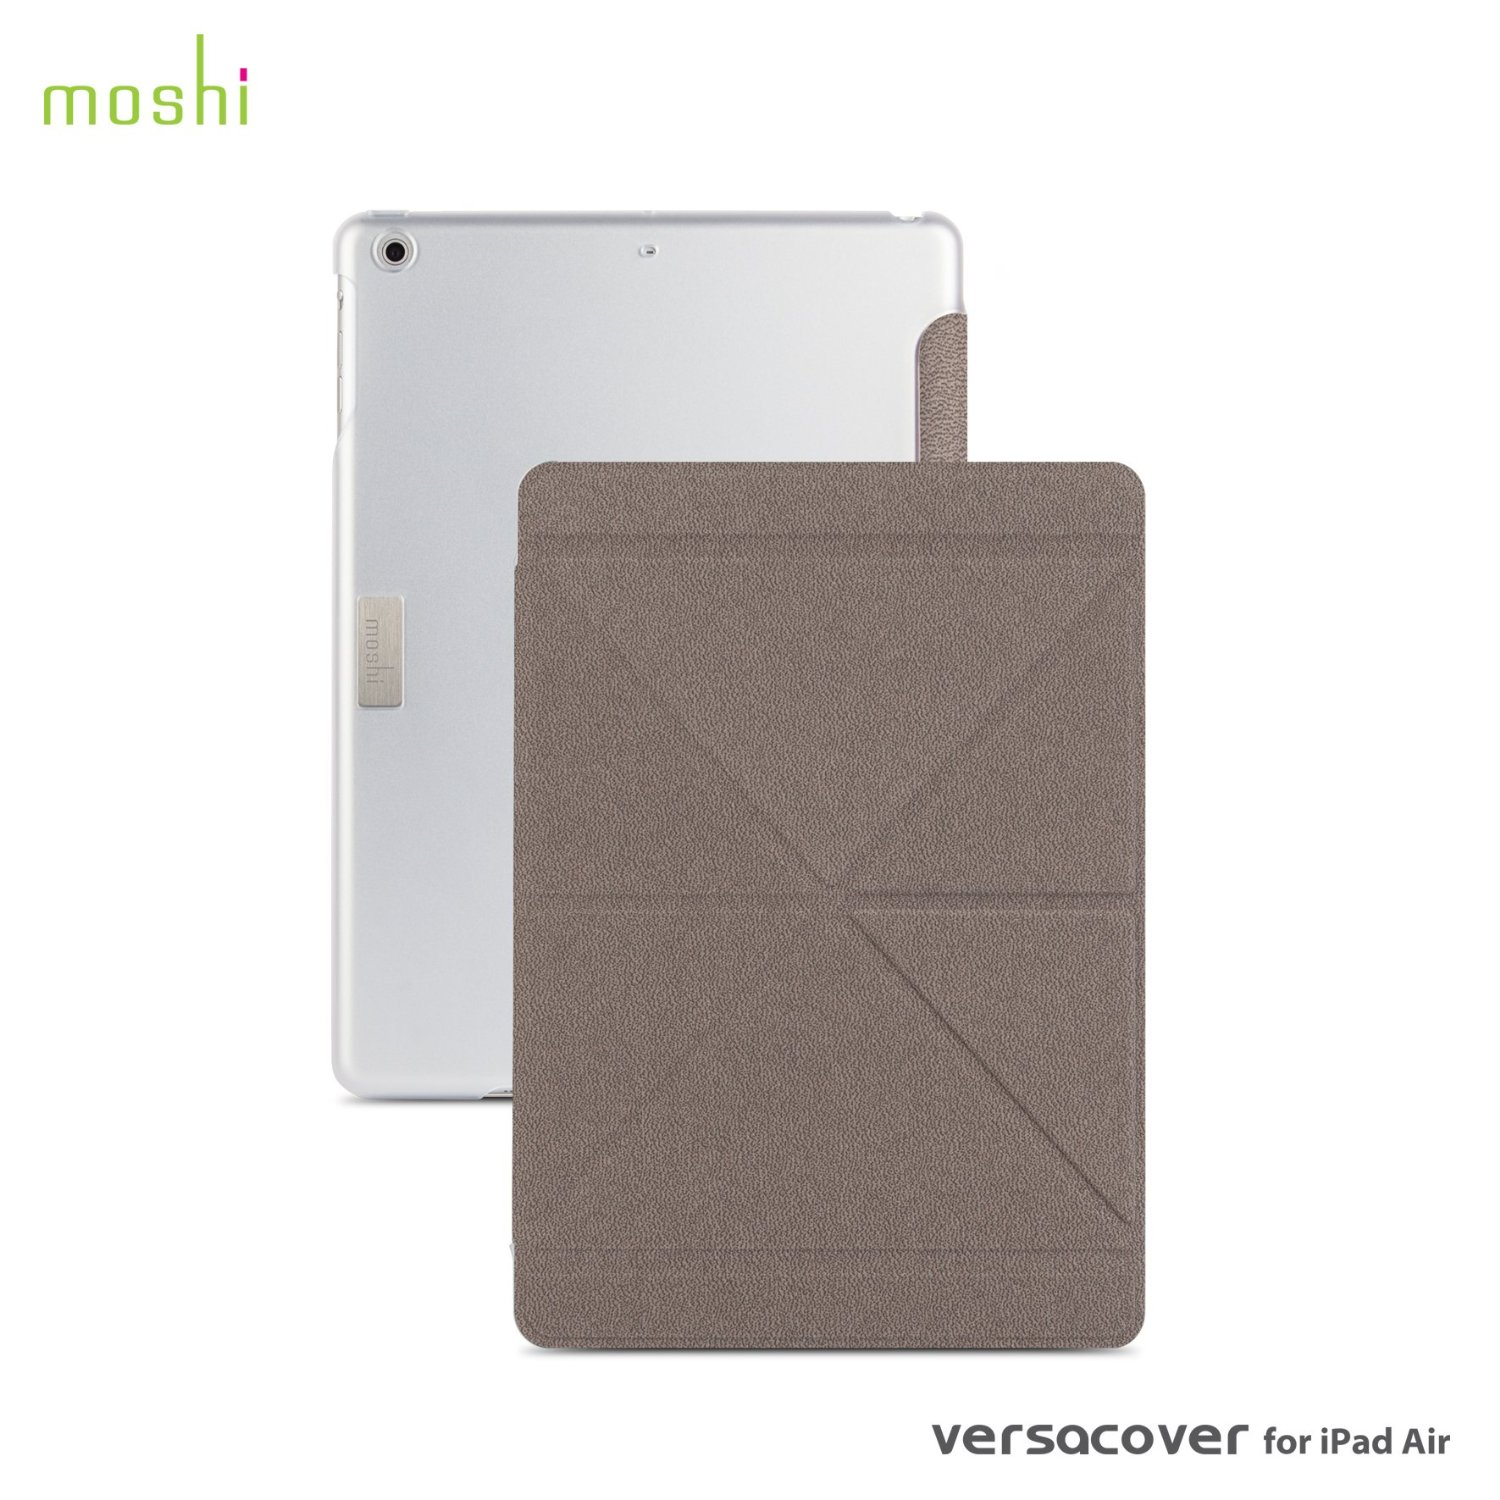 moshi_iGlaze_versaCover_ipad_air_case